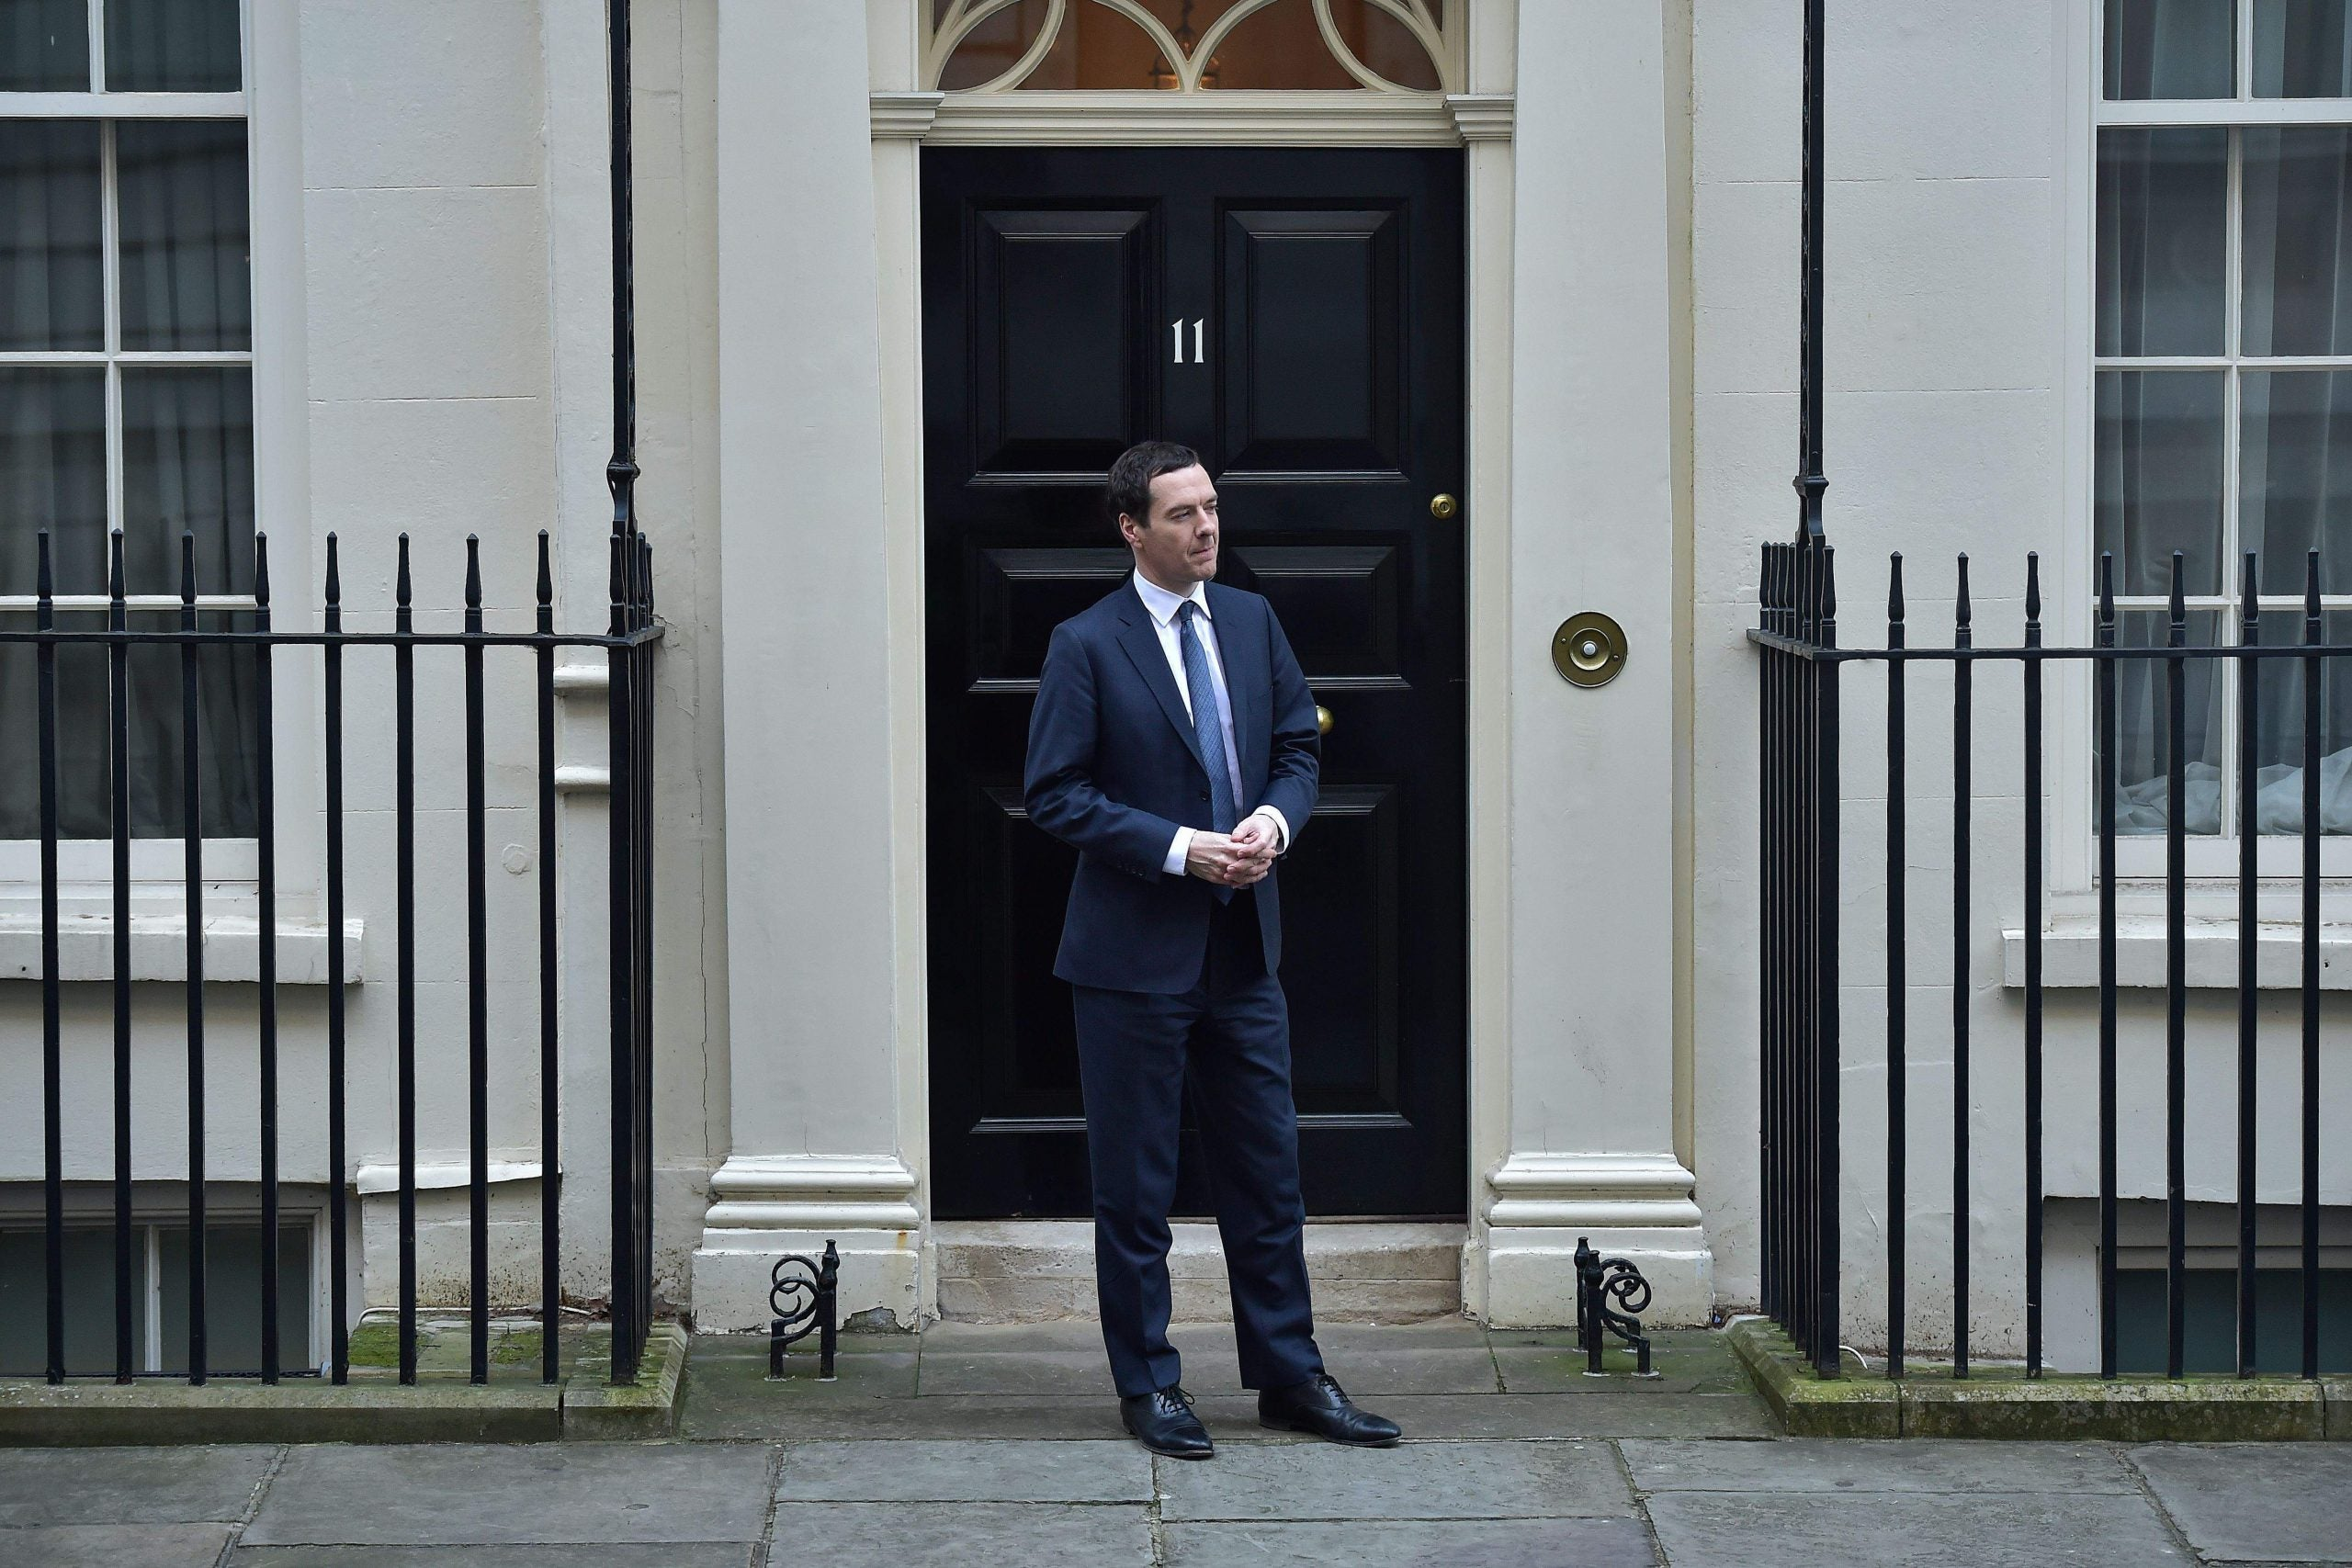 George Osborne has failed. Now it's up to Labour to set out the alternative